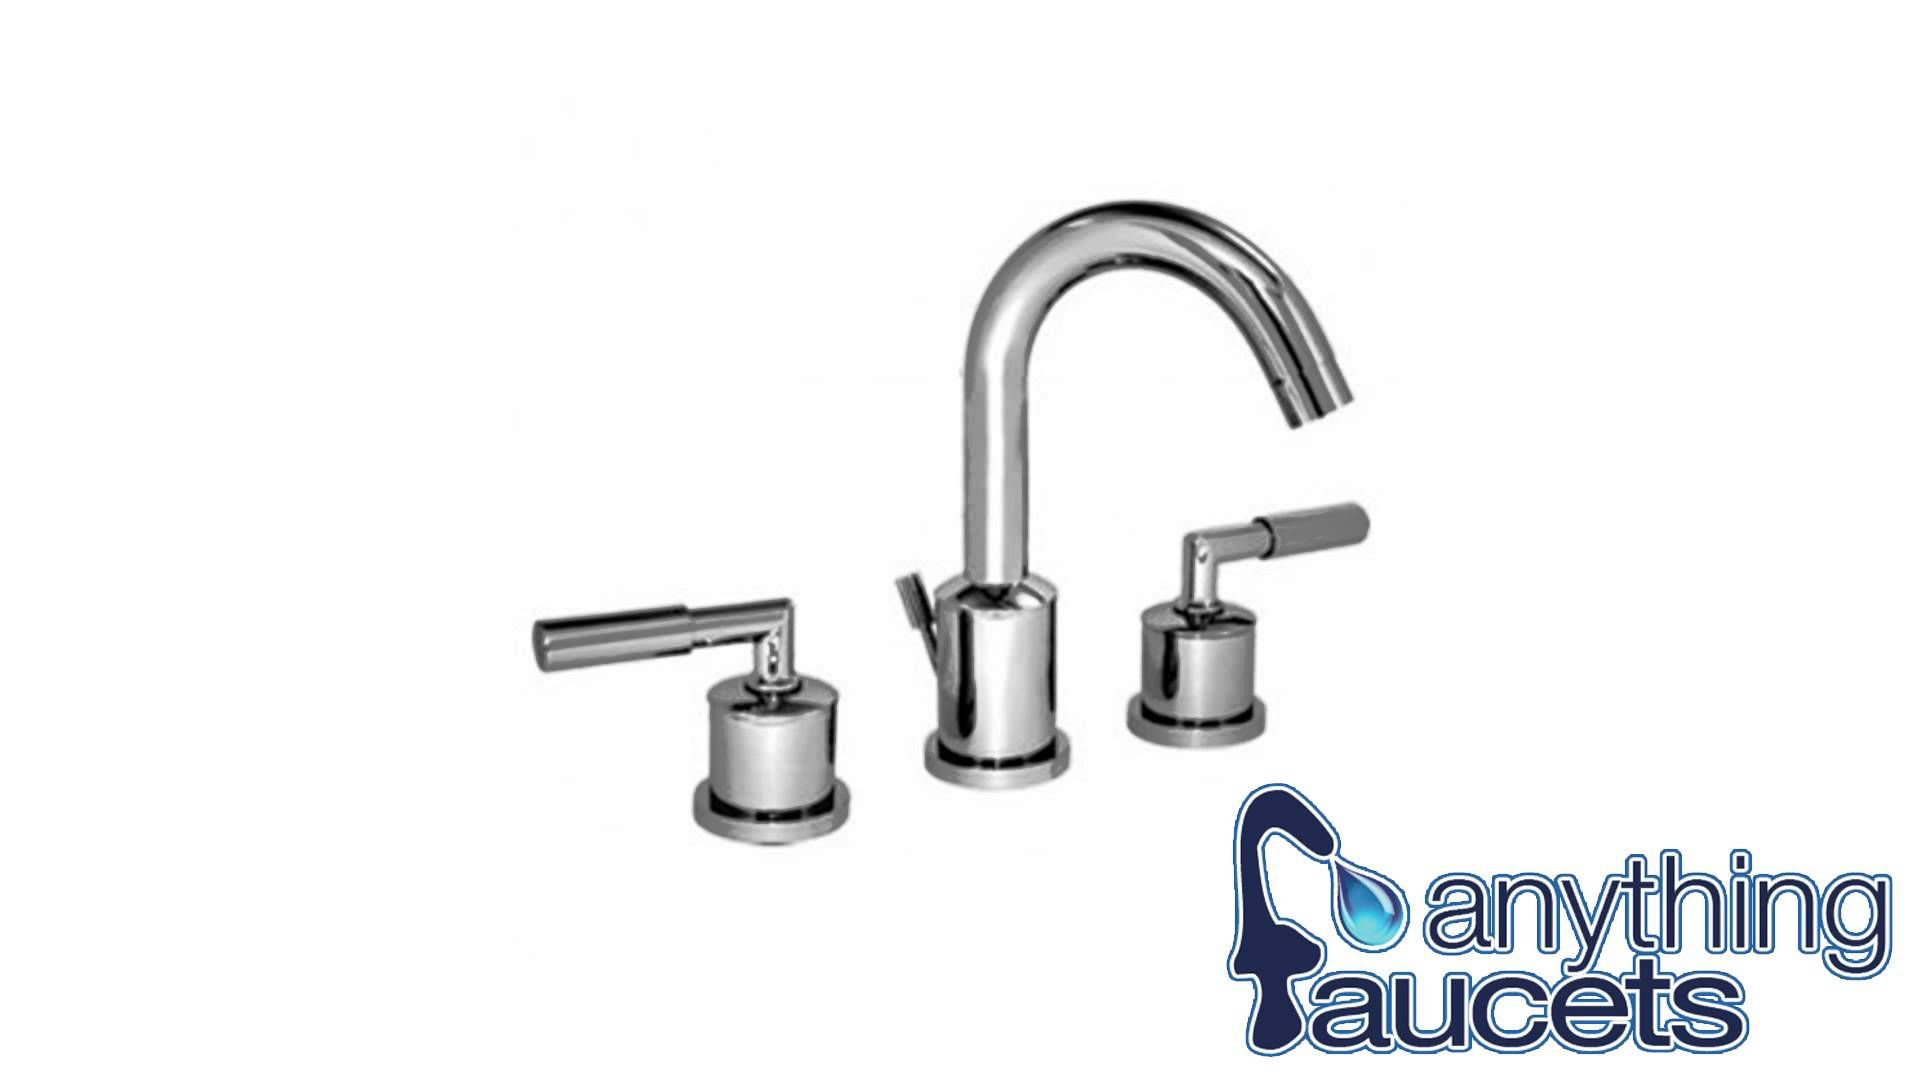 Altmans Gemma Bathroom Faucets at anythingfaucets.com | Altmans ...